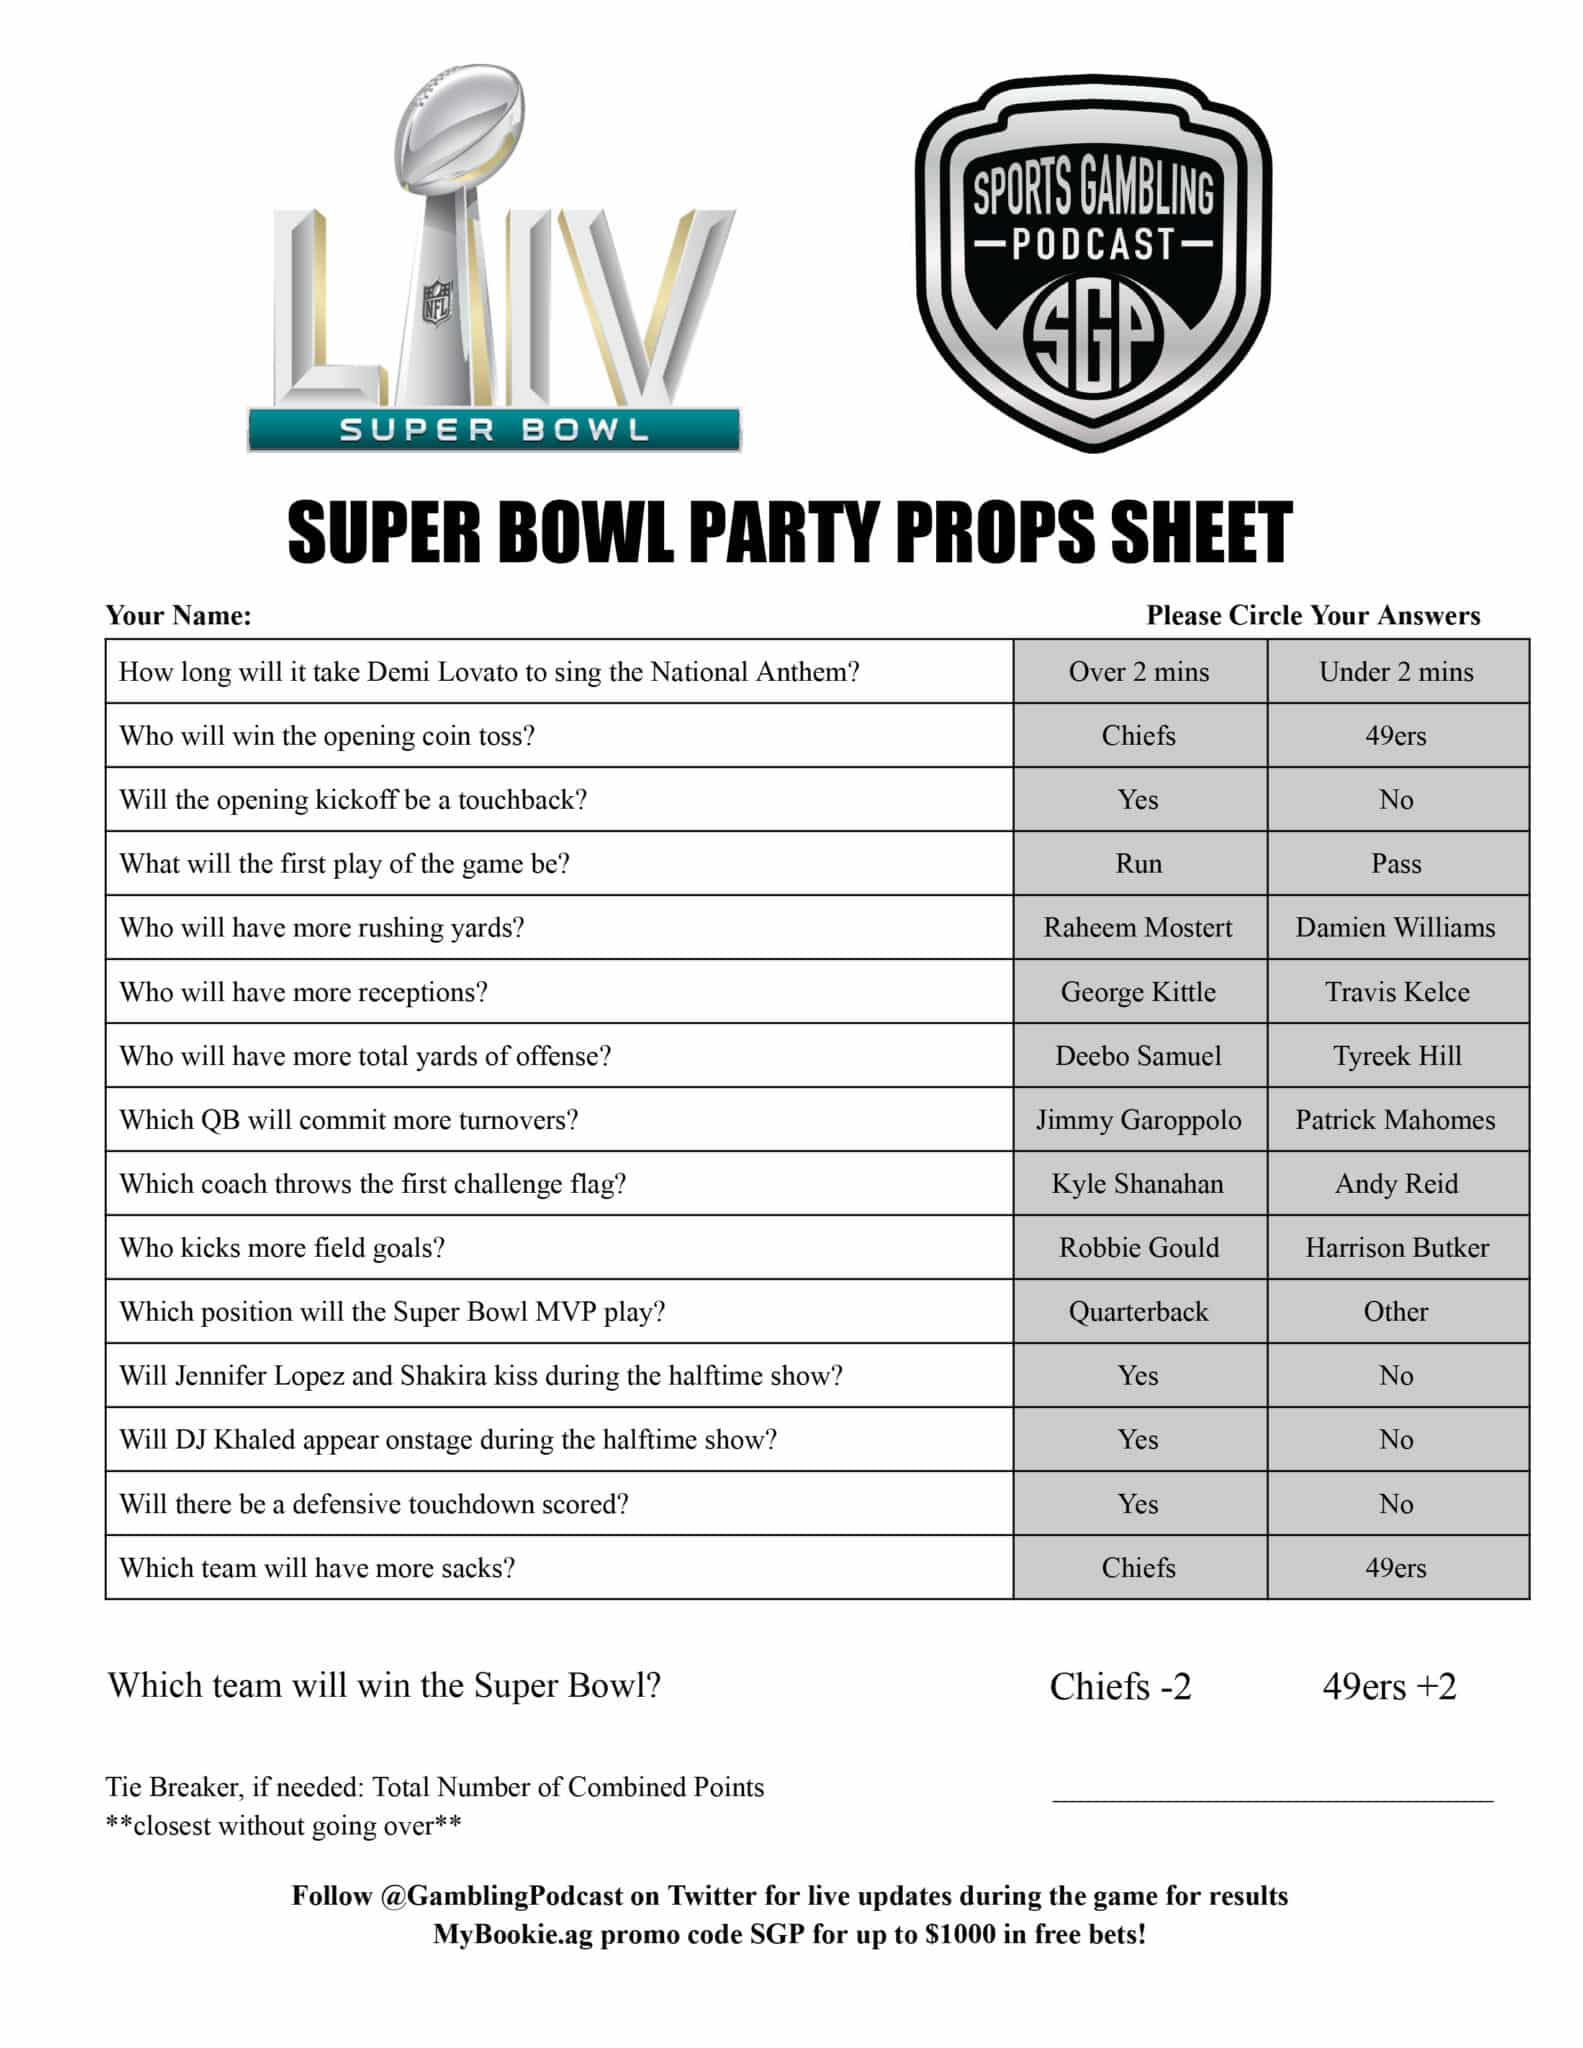 Funny bets on the superbowl electric drive trucks mining bitcoins